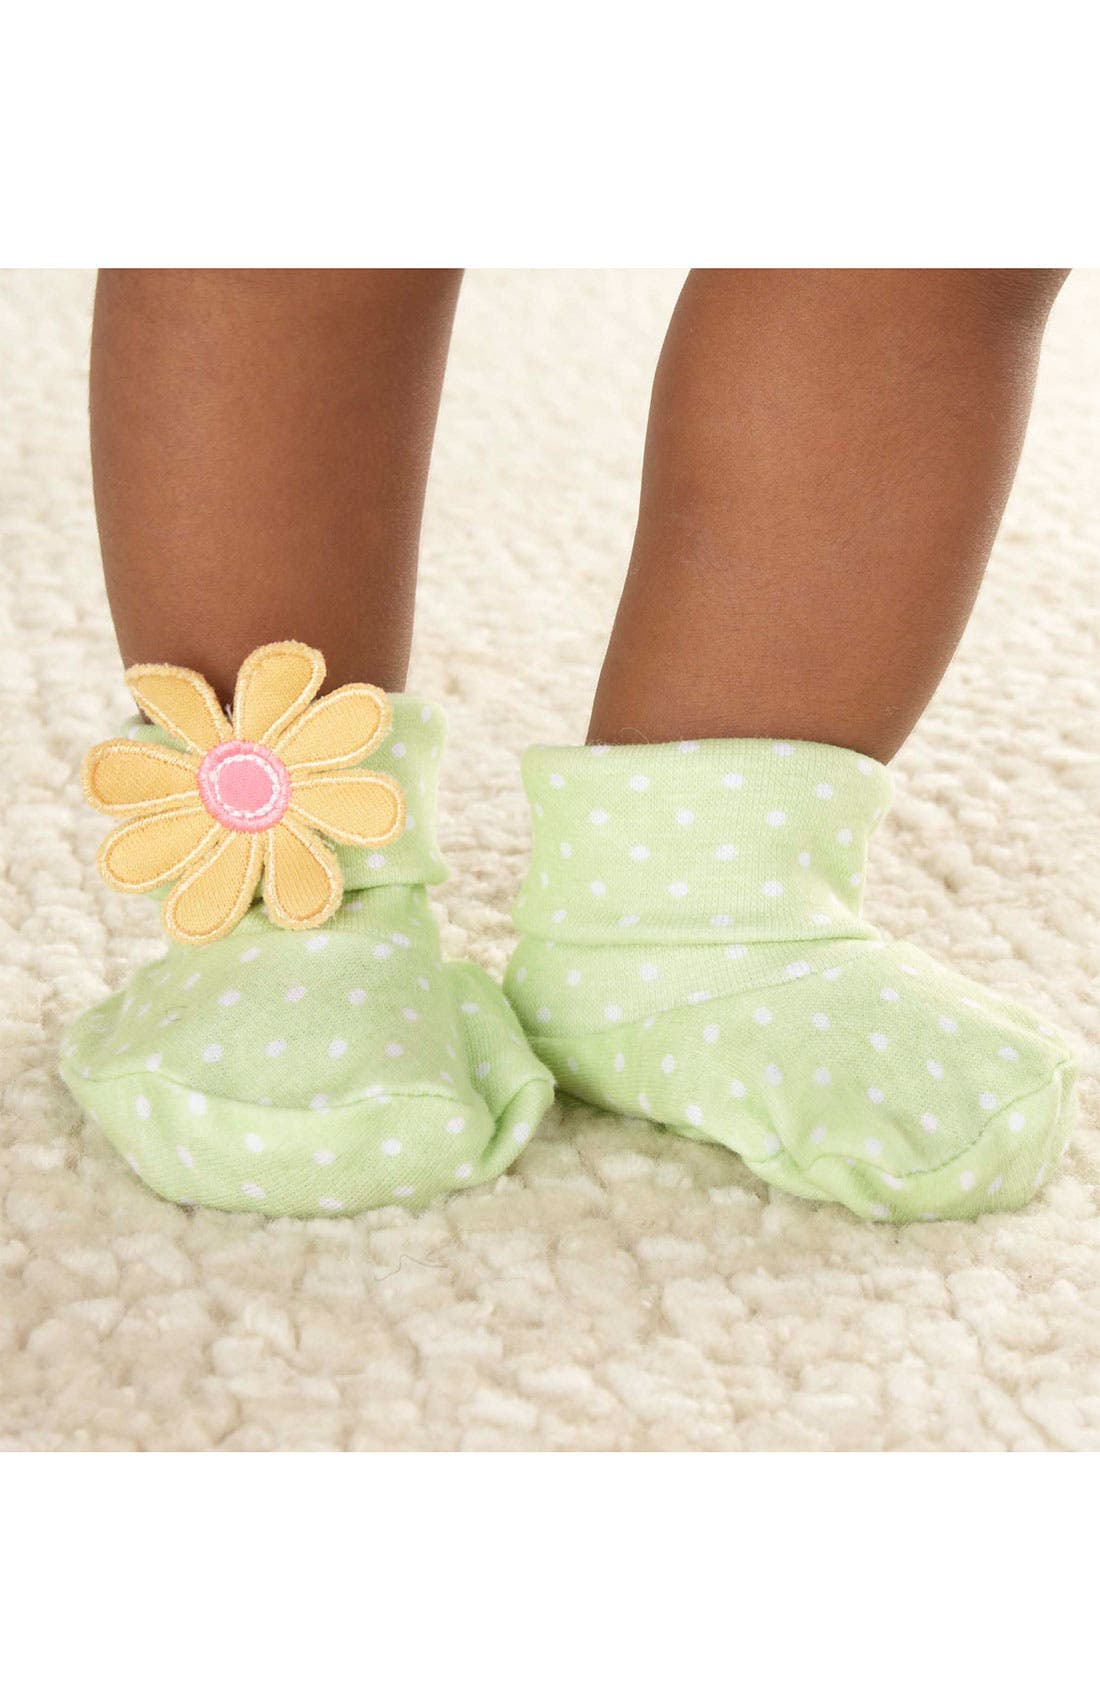 Alternate Image 3  - Baby Aspen 'Bunch O Blooms' Headband & Booties (Infant)